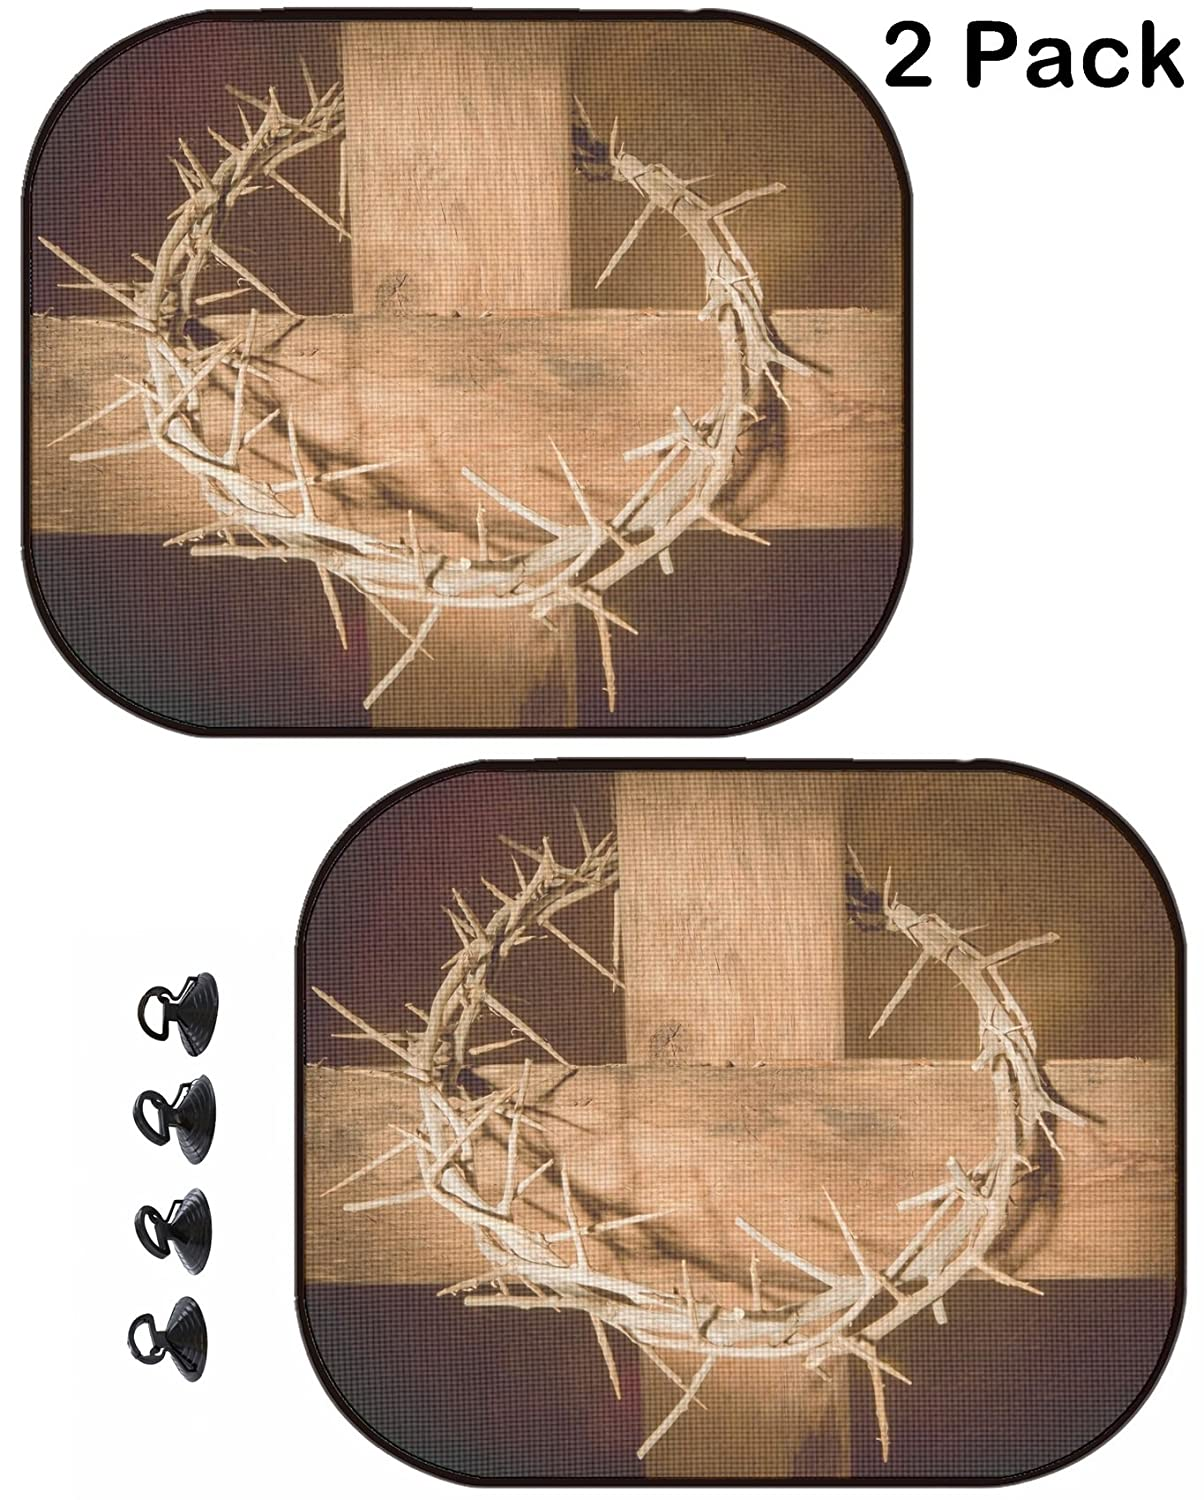 2 Pack Image ID MSD Car Sun Shade Protector Side Window Block Damaging UV Rays Sunlight Heat for All Vehicles 4198739 Crown of Thorns Hanging on a Wooden Cross at Easter